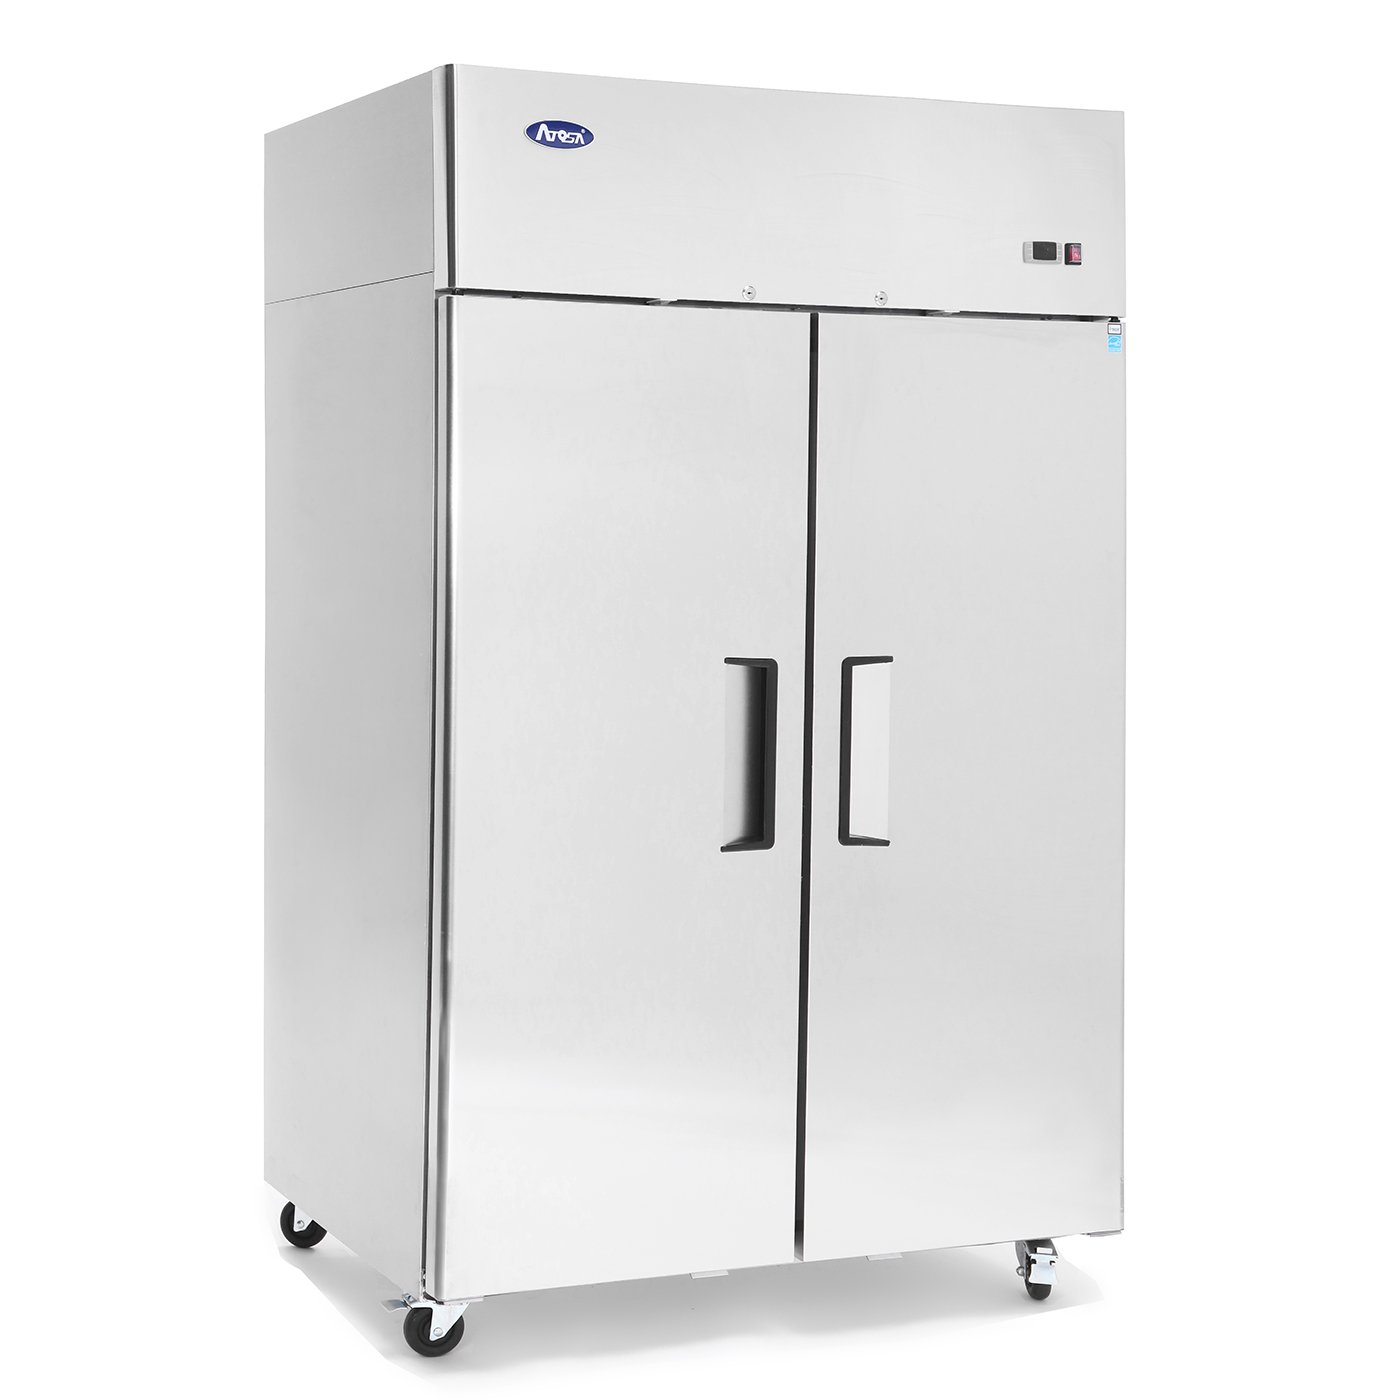 ATOSA MBF8002 Commercial Freezer, Double 2 Door Side By Side, Energy Star